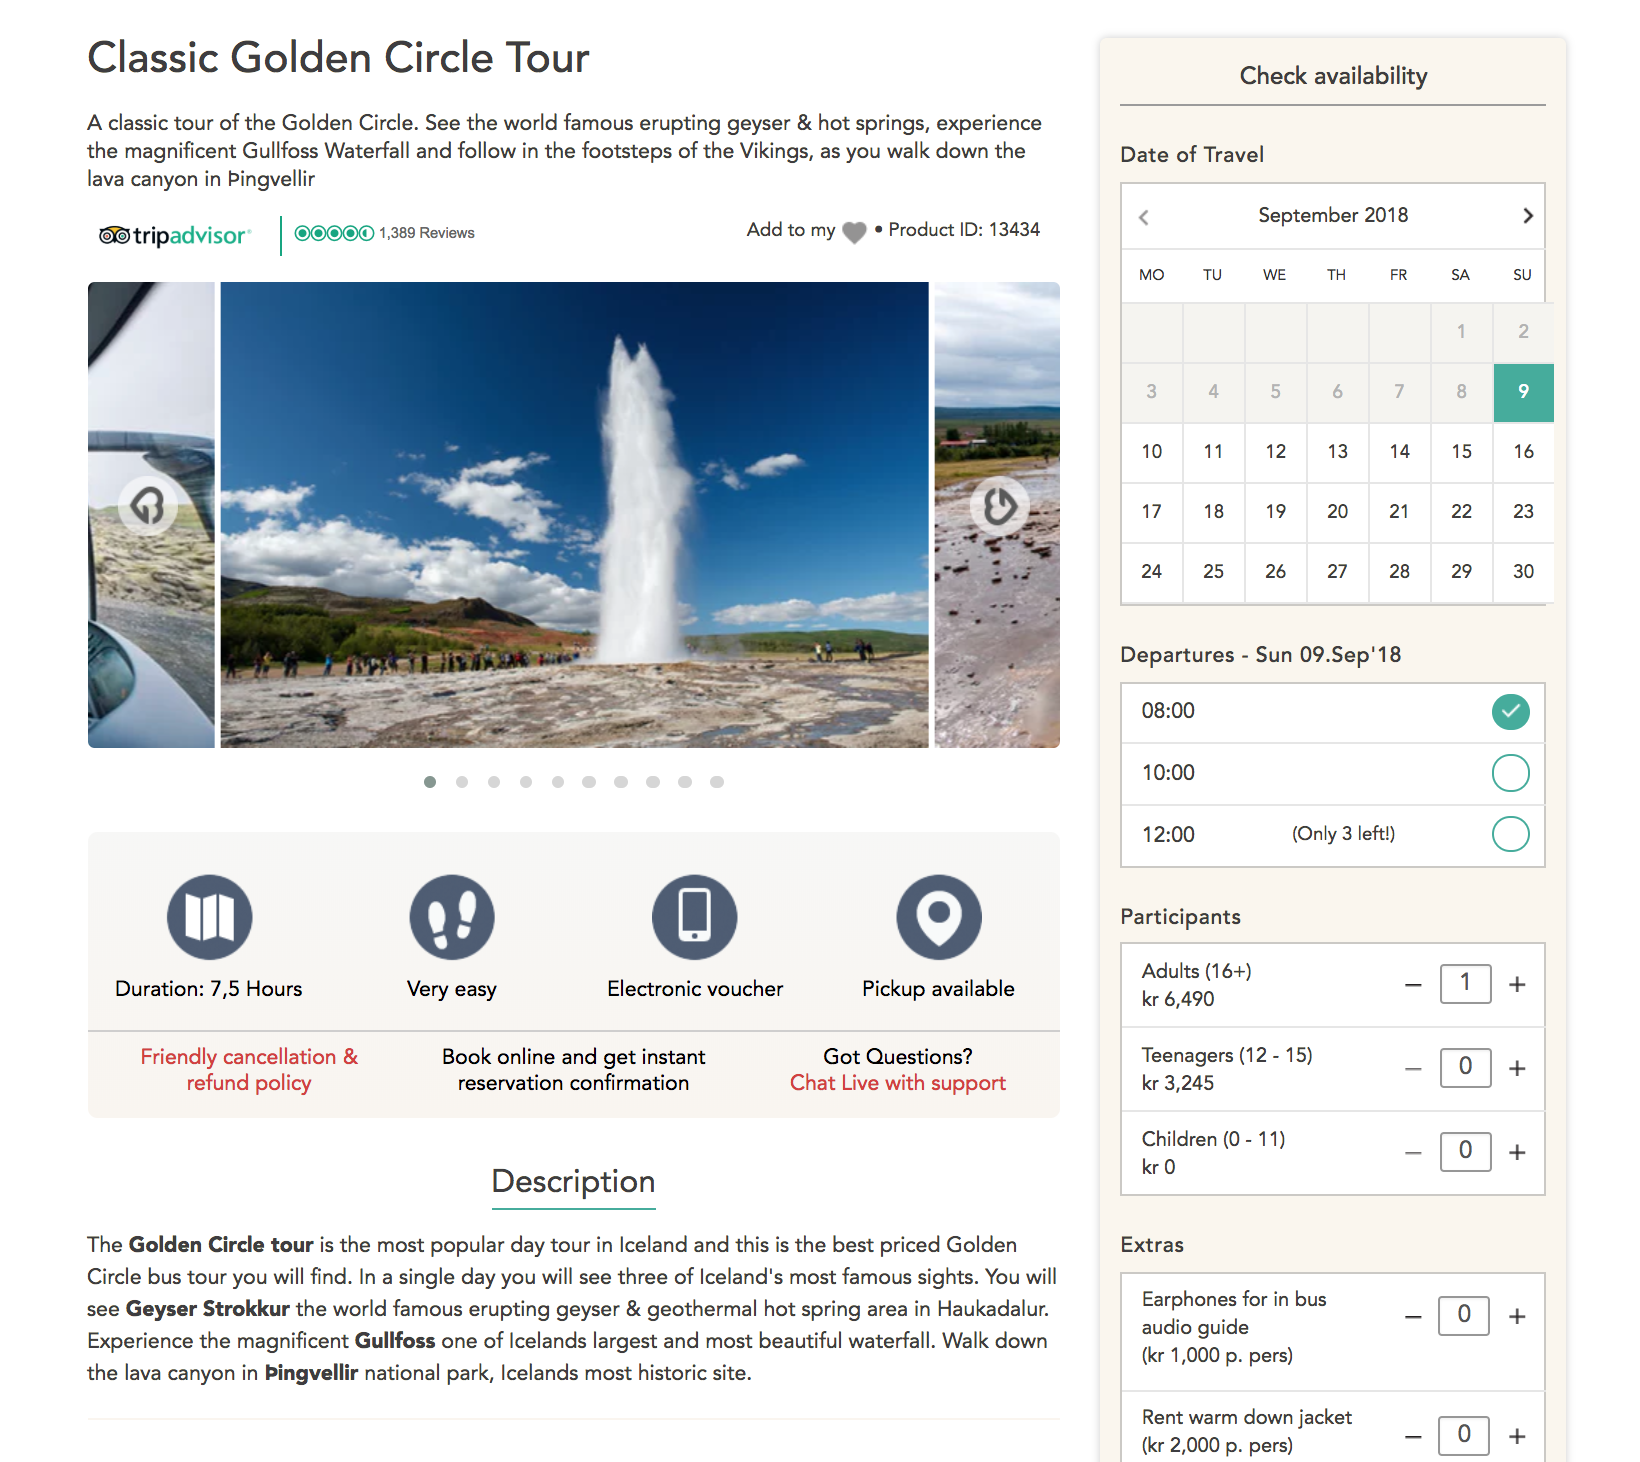 Travel CMS & Sales solution - Highly customizable ecommerce website and CMS created for the travel industry. Accept bookings with live inventory and take payments online.